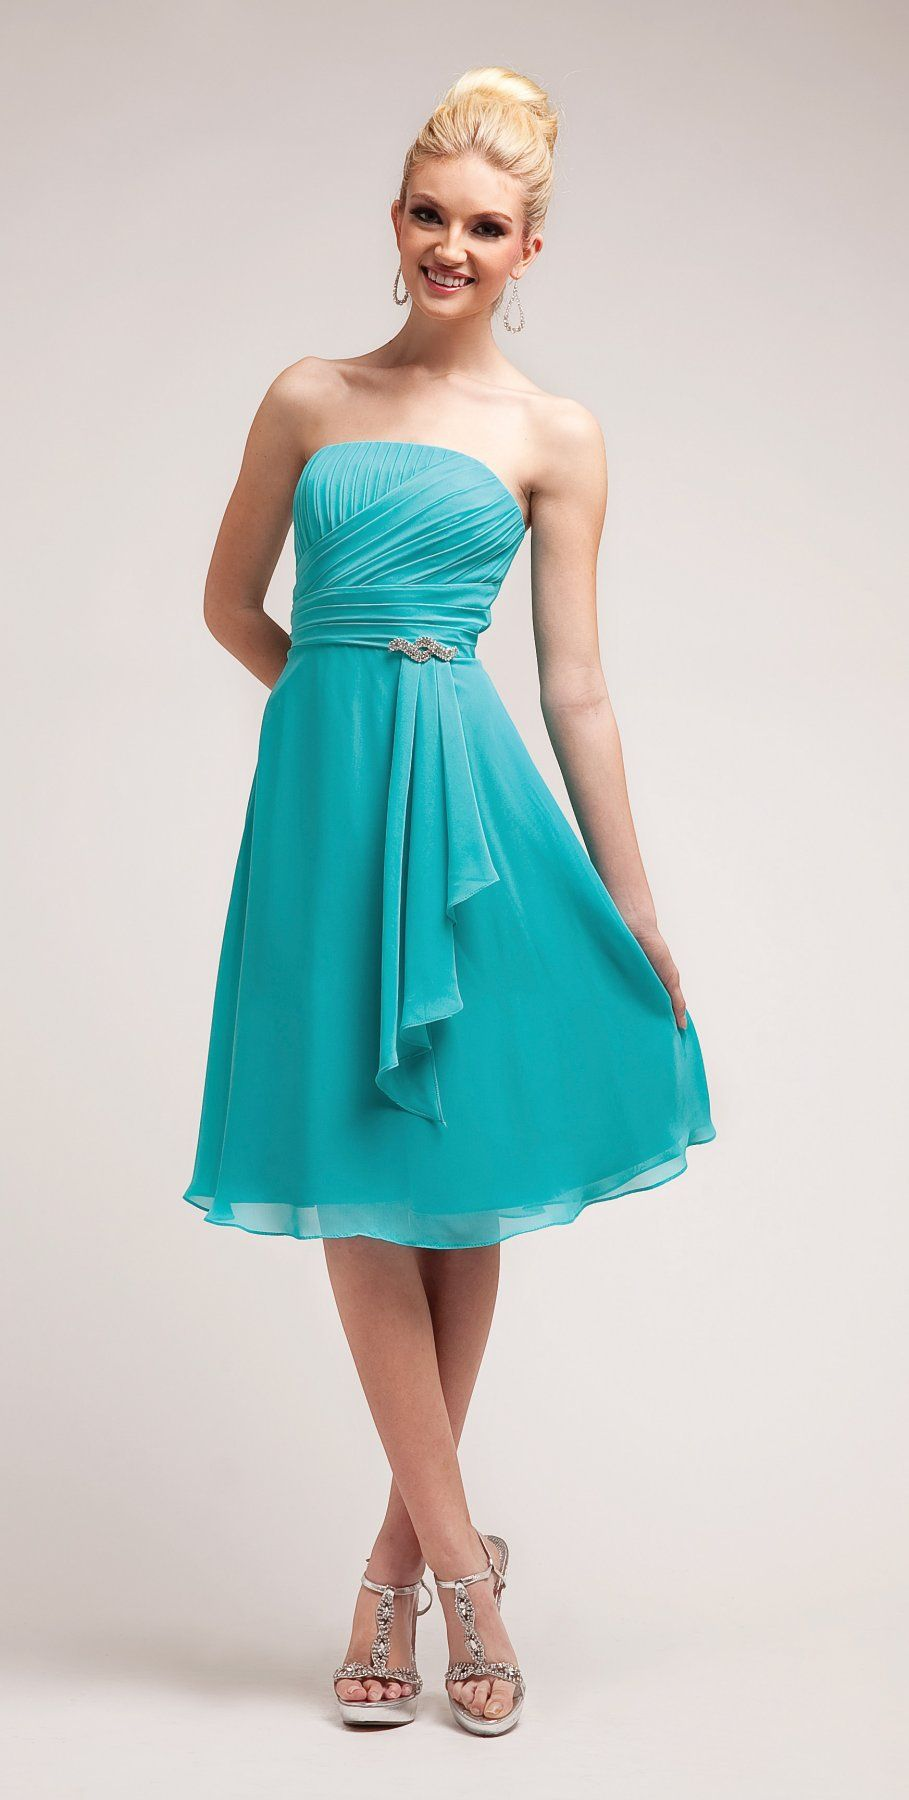 Simple A Line Knee Length Aqua Bridesmaid Dress Chiffon Strapless ...